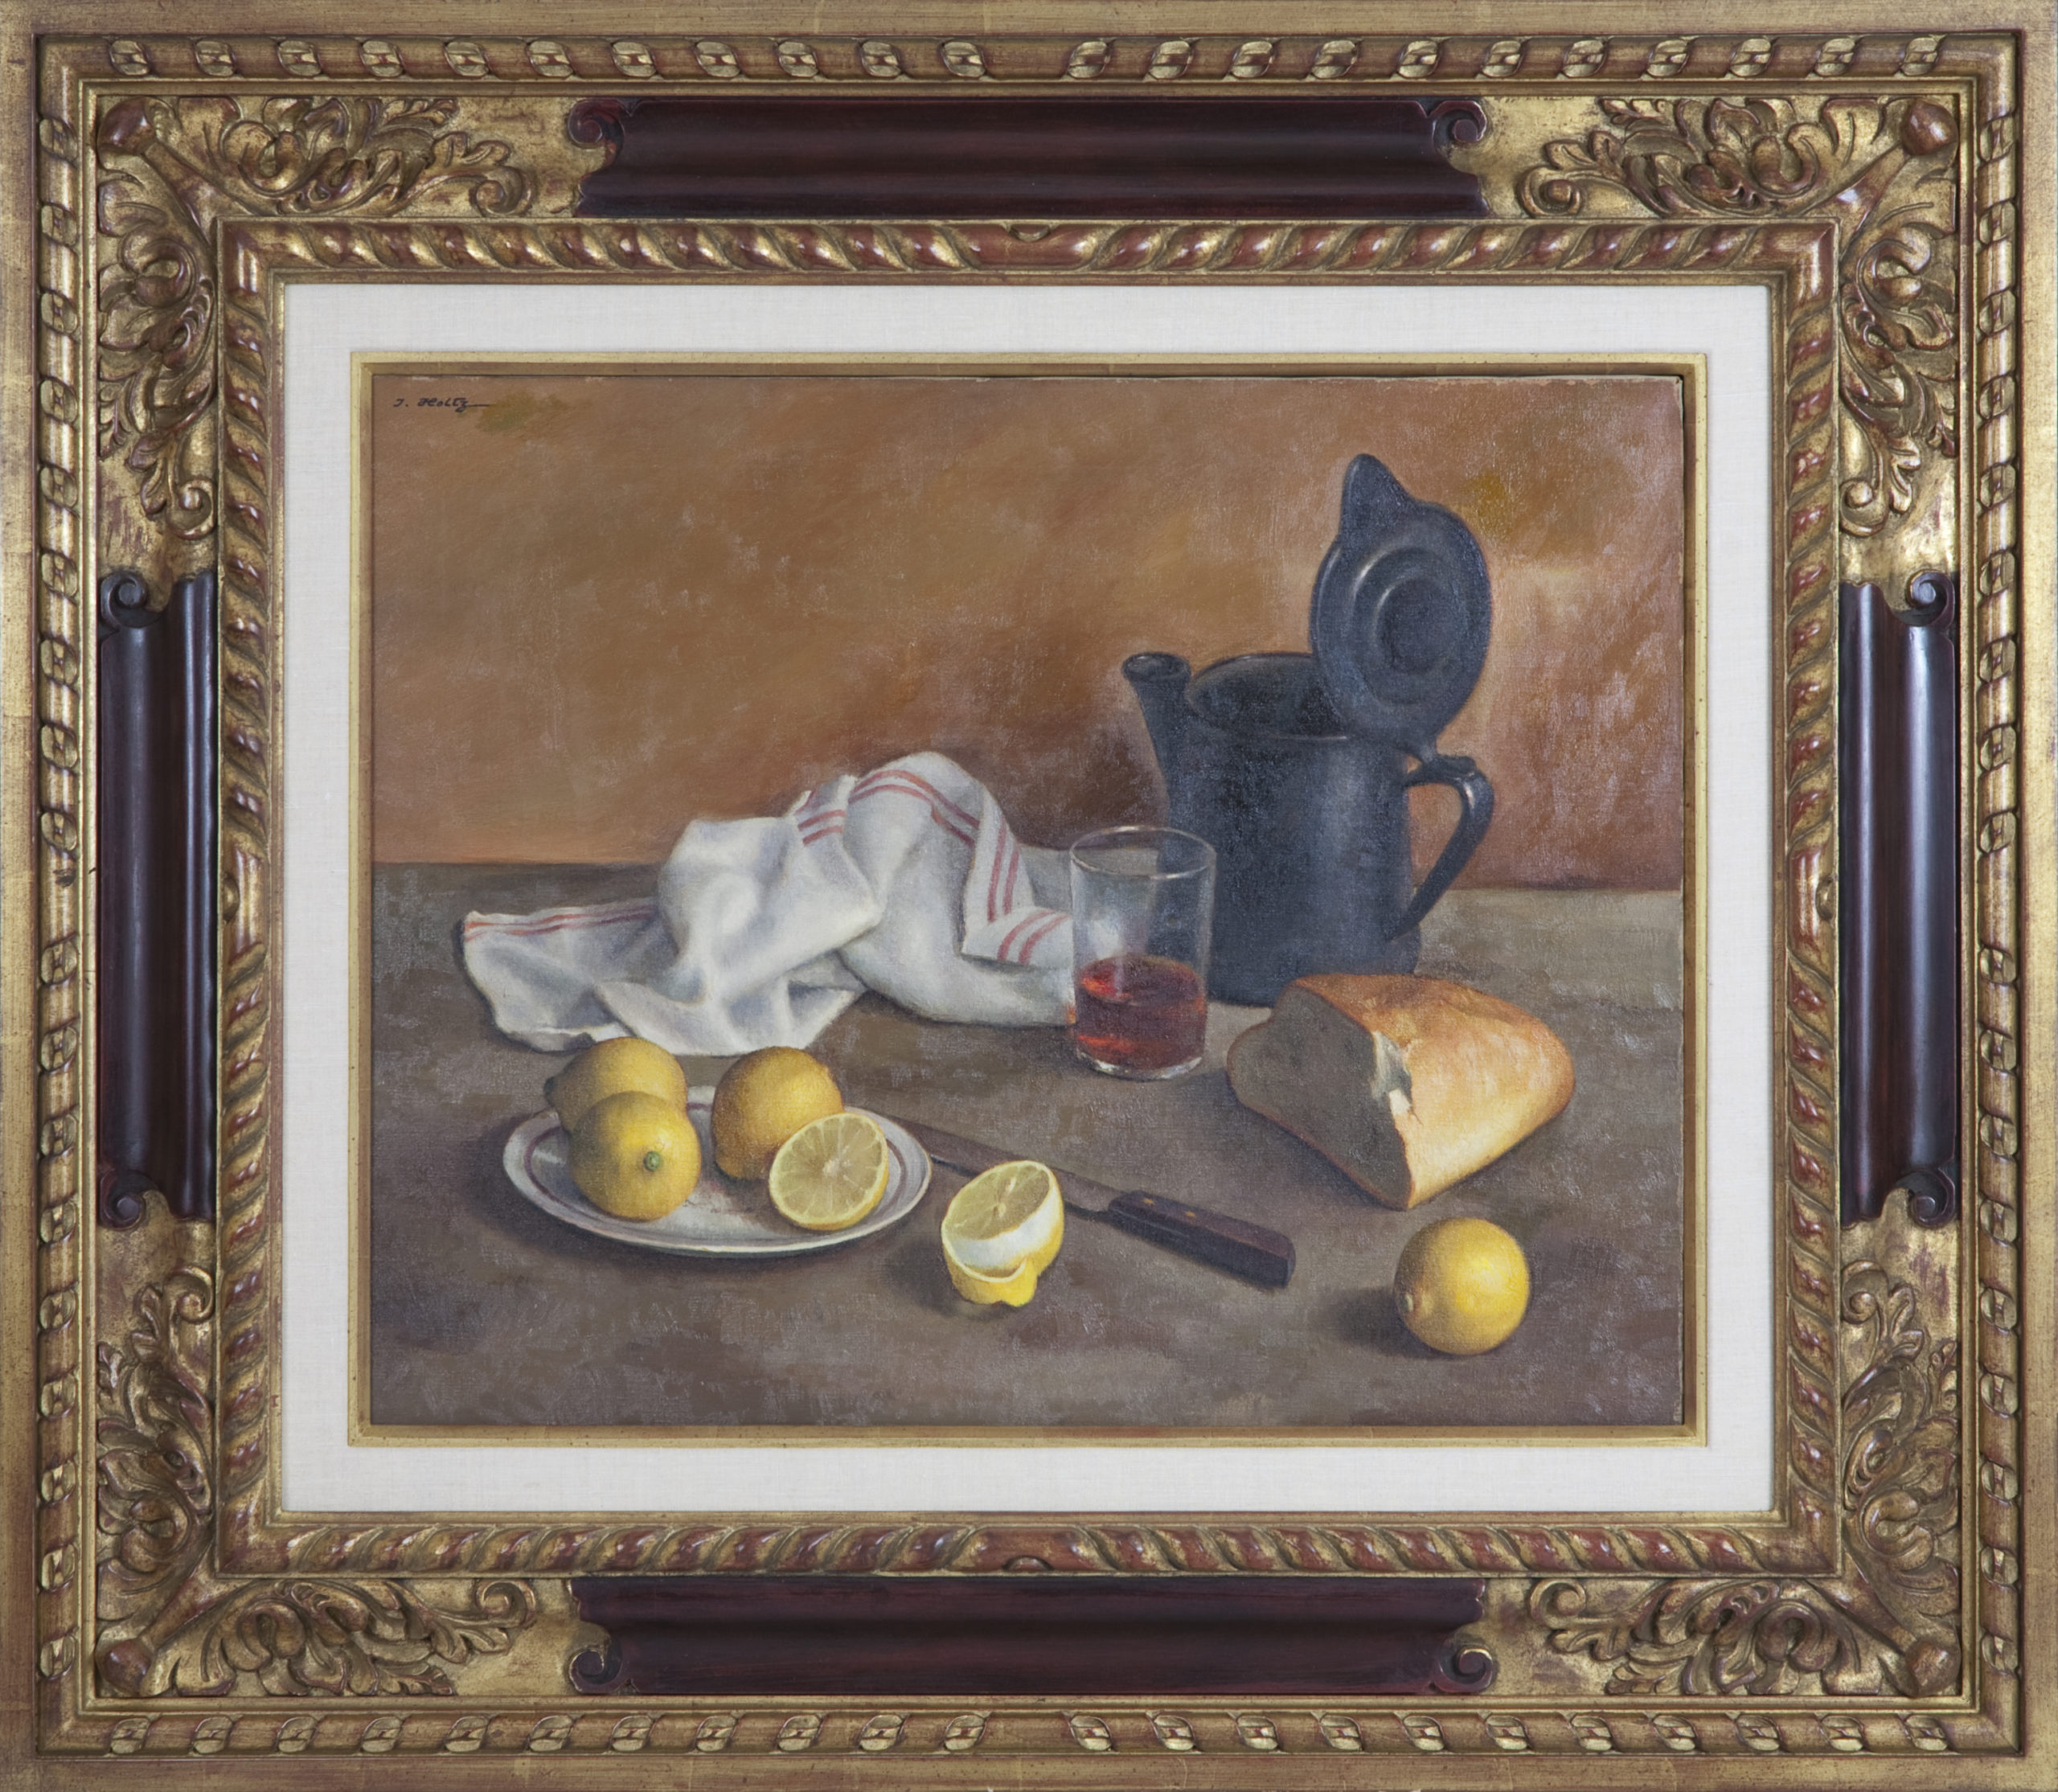 281 Still Life with Lemons Tea and Bread - Oil on Canvas - 25 x 20 - Frame: 38.5 x 33.5 x 2